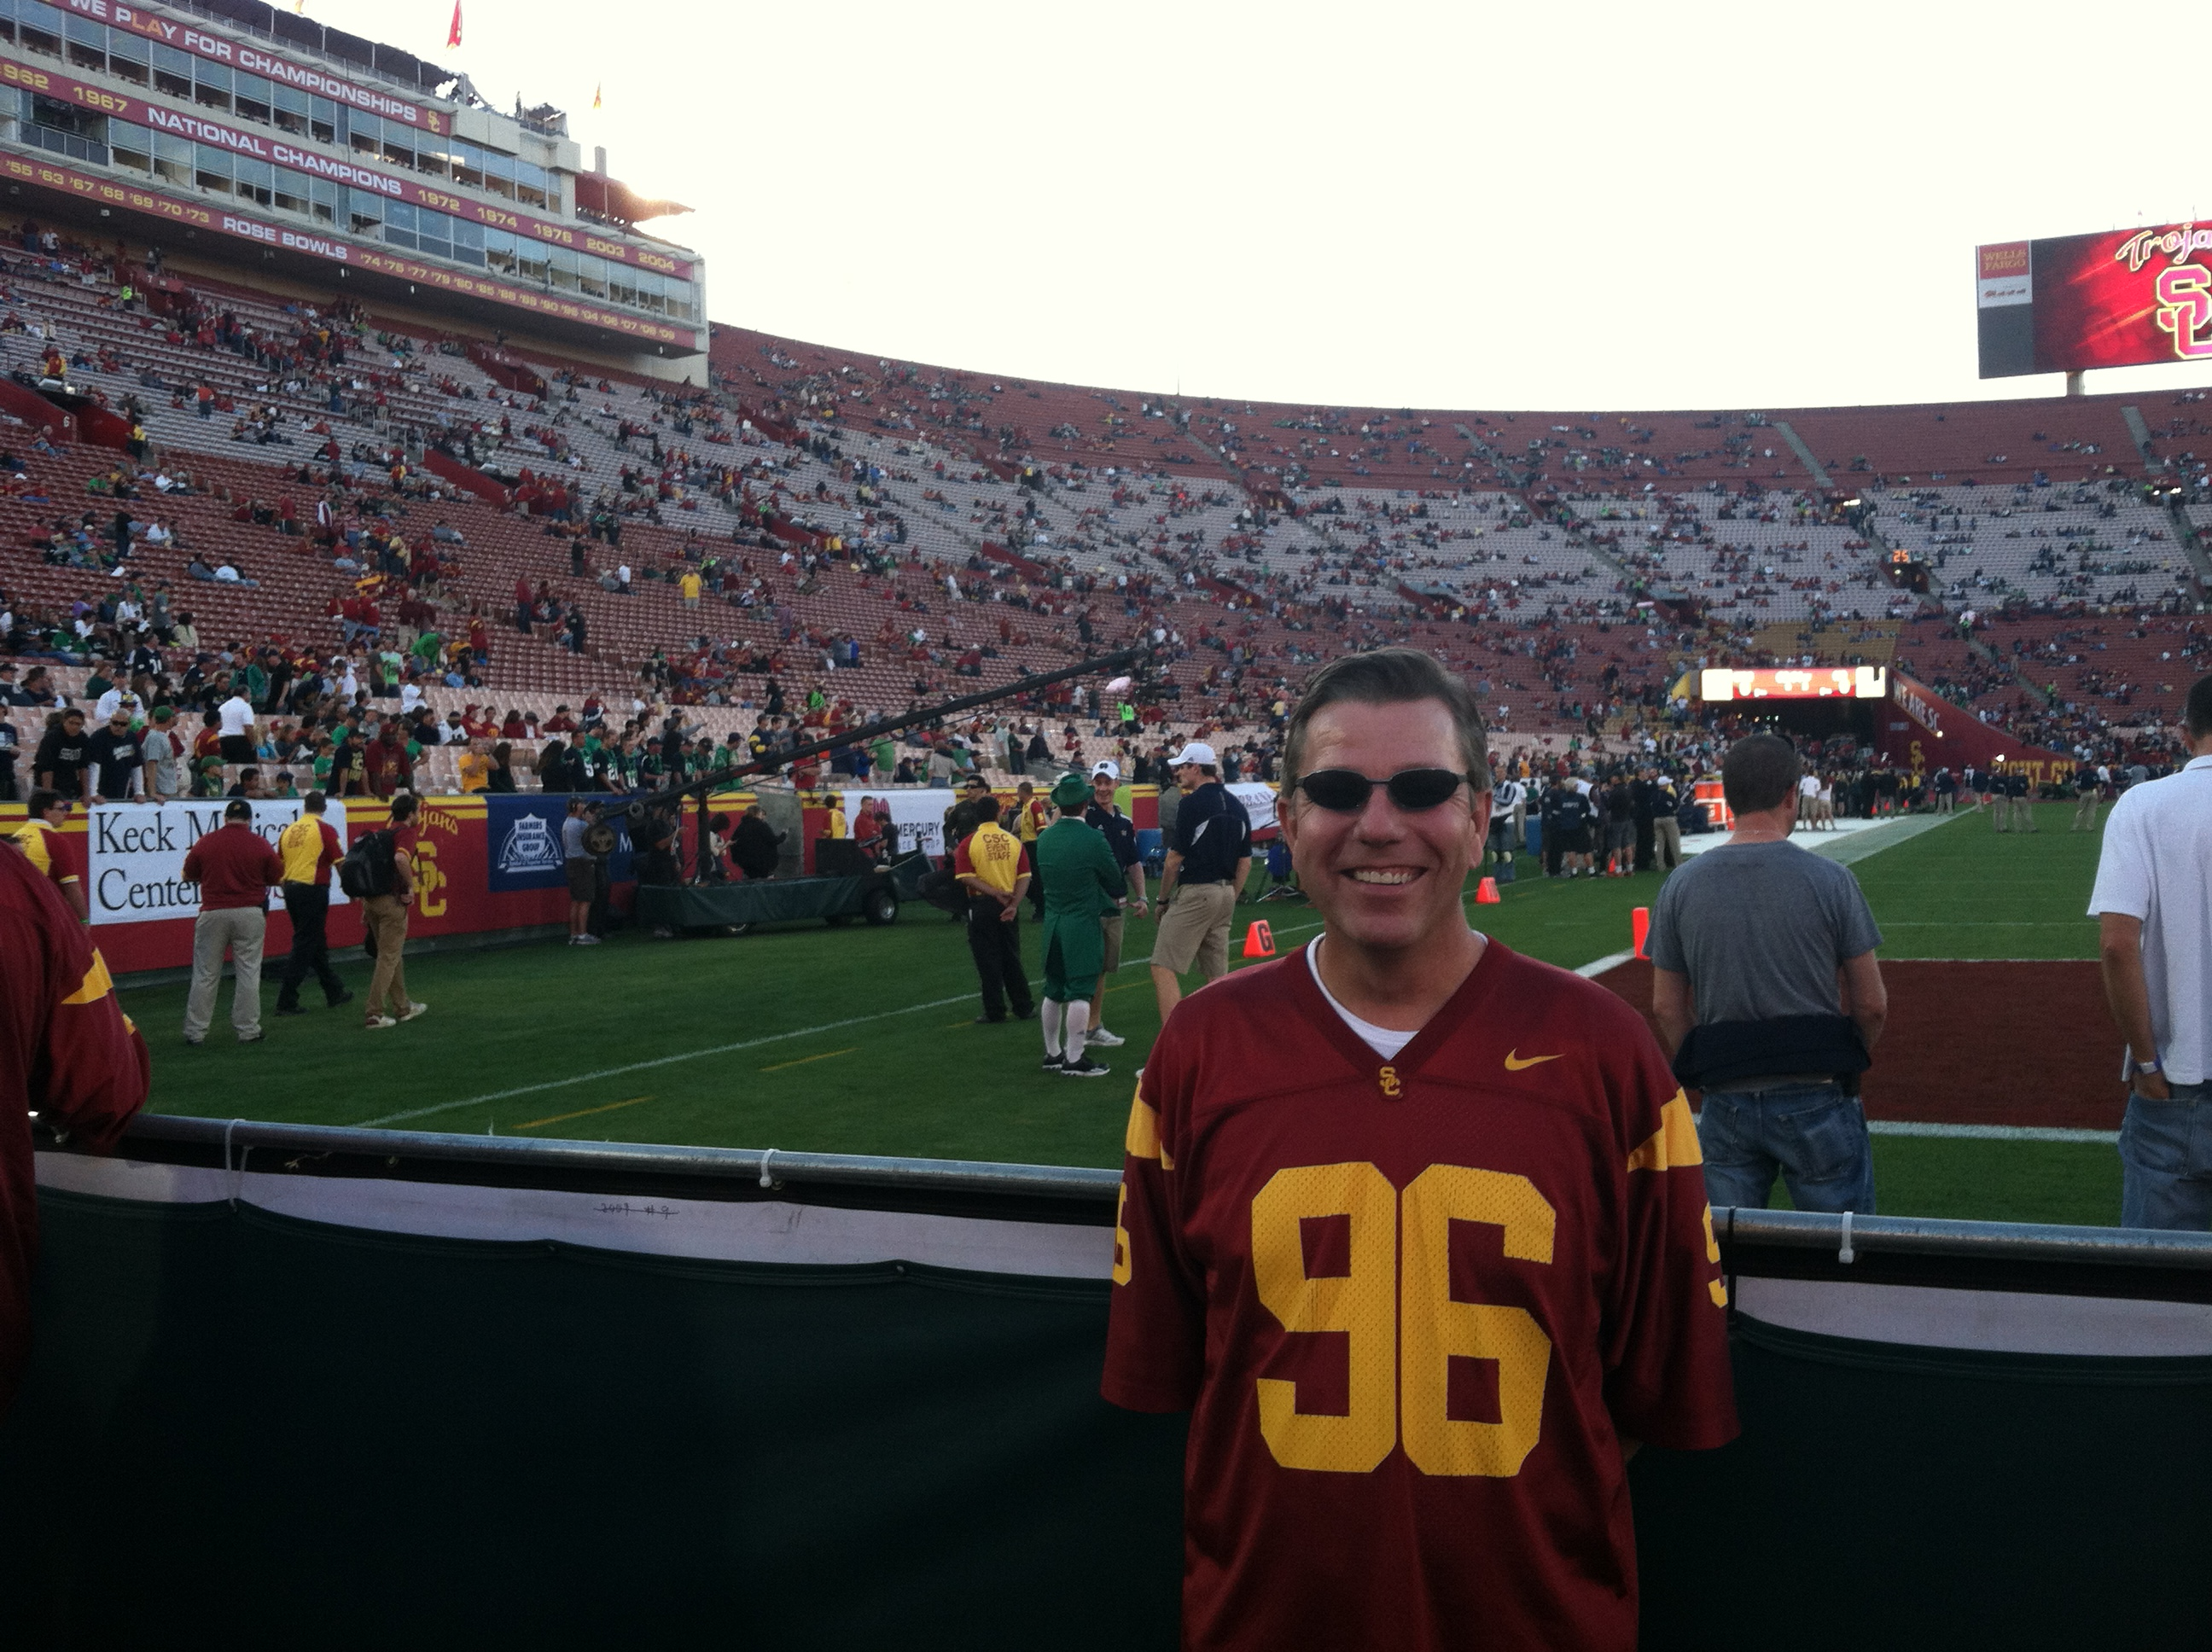 Andy_usc_field_v_notre_dame